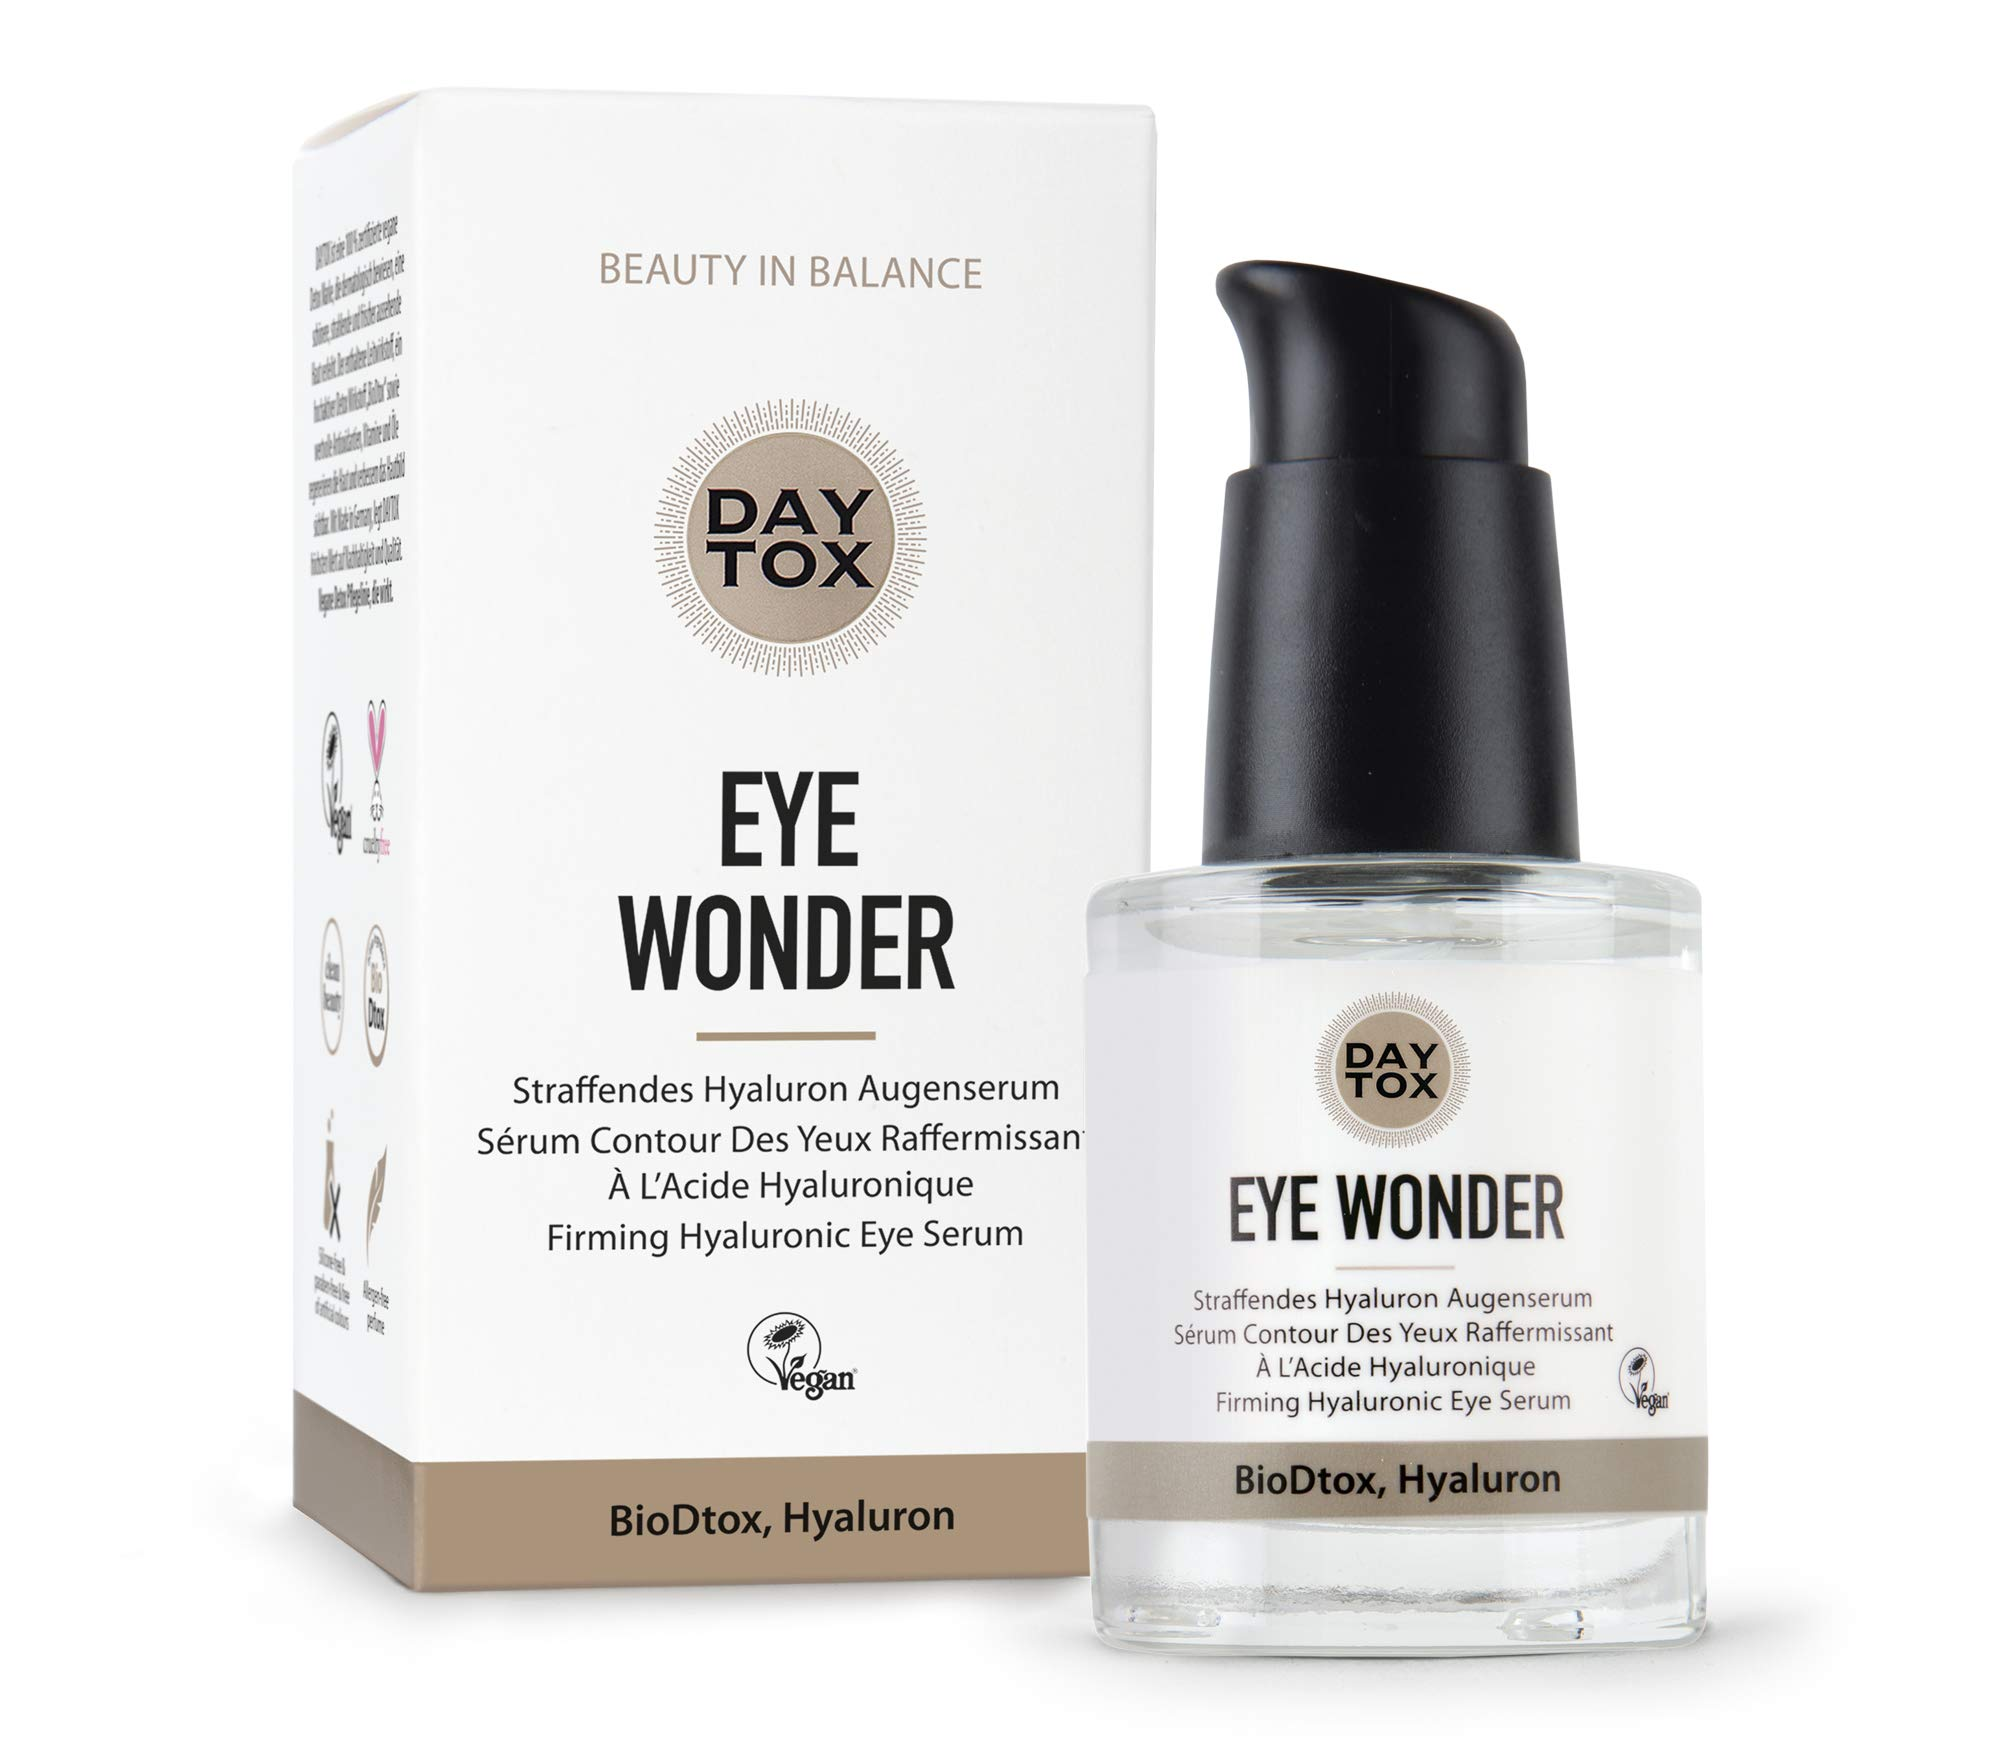 DAYTOX - Eye Wonder - Tightening Hyaluronic Eye Serum, High Dosage with Immediate Effect - Vegan, without Colourants, Silicone and Paraben free - 1 x 30 ml